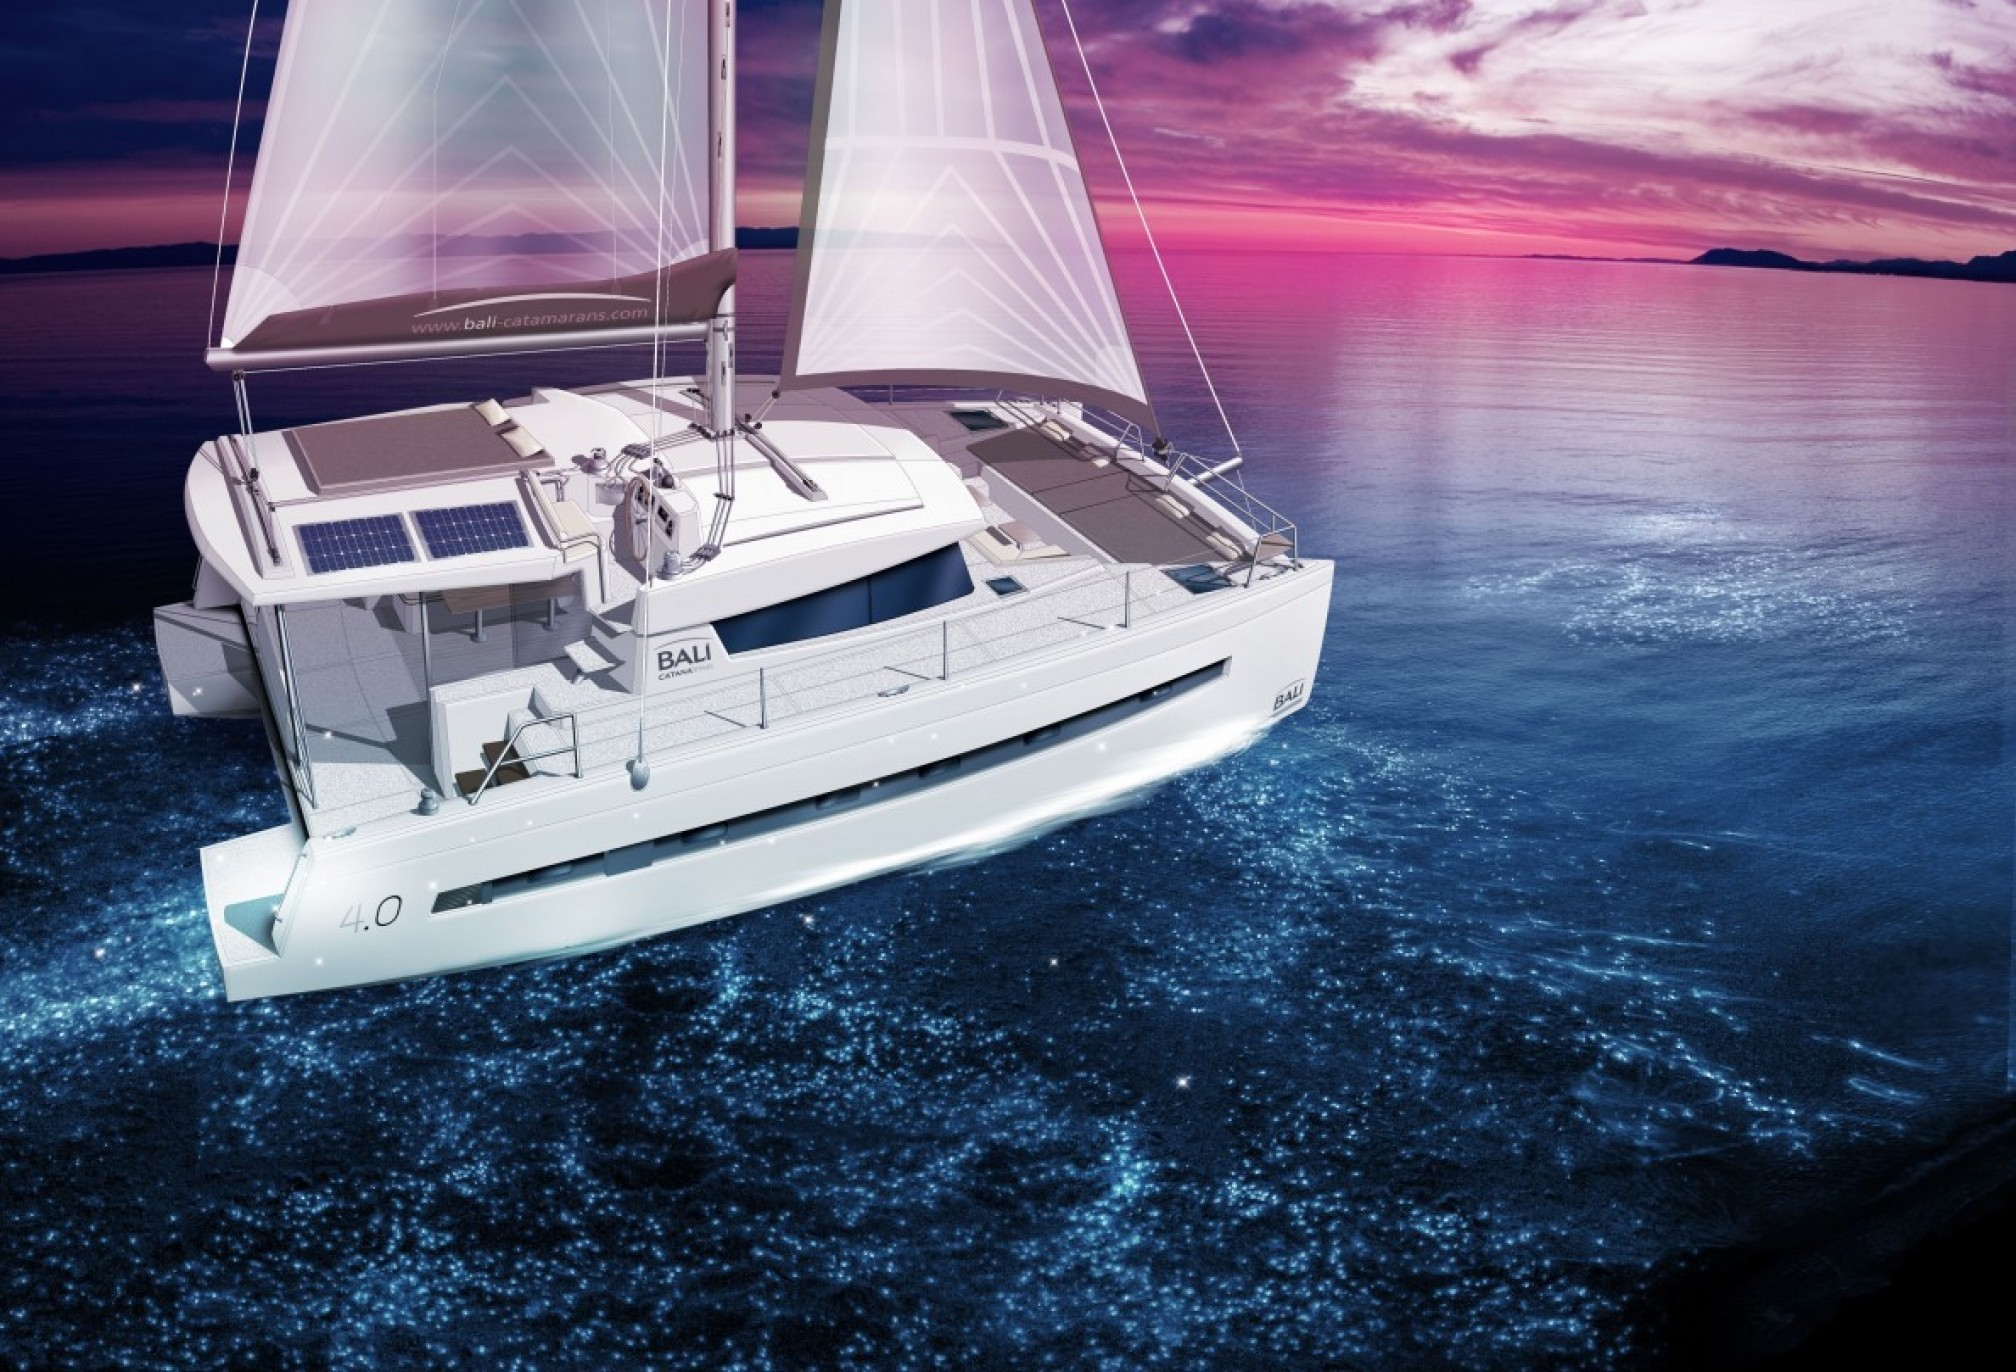 Bali 4.0, PRIVATE BAY | Catamaran Charter Croatia